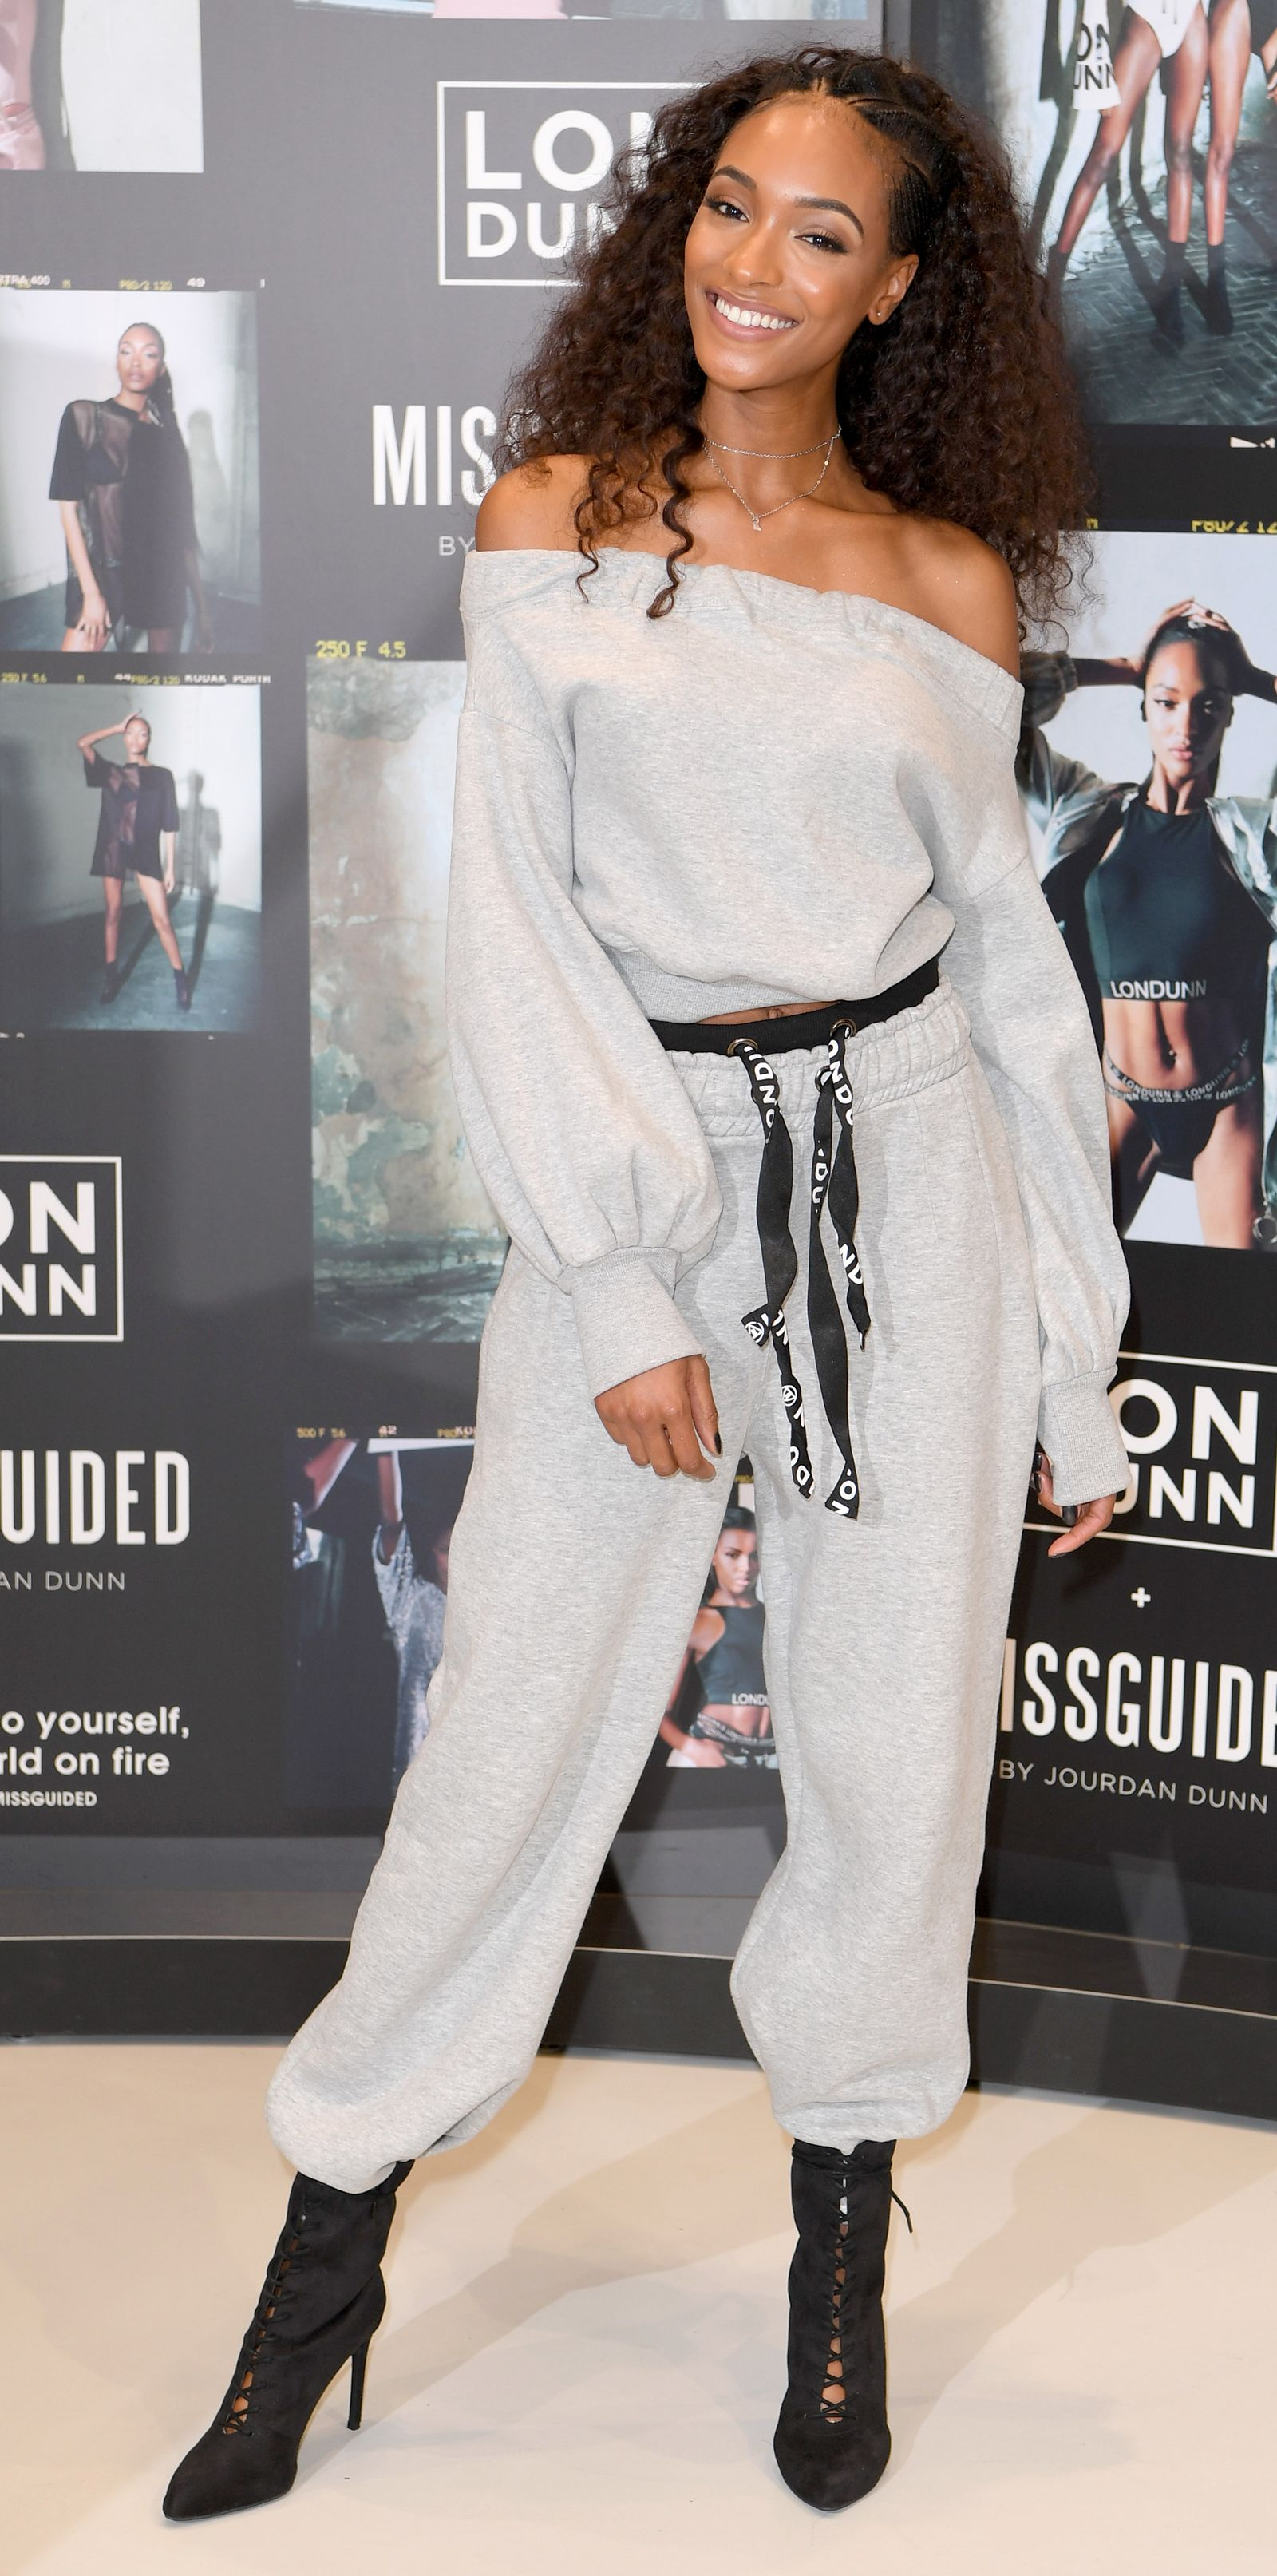 Jourdan Dunn showed us athleisure at its finest while at the launch for her clothing collaboration with Missguided. She wore an off-the-shoulder sweatshirt and matching sweatpants with contrast logo drawstrings and elastic waistband. Lace-up booties and layered chokers completed the look.